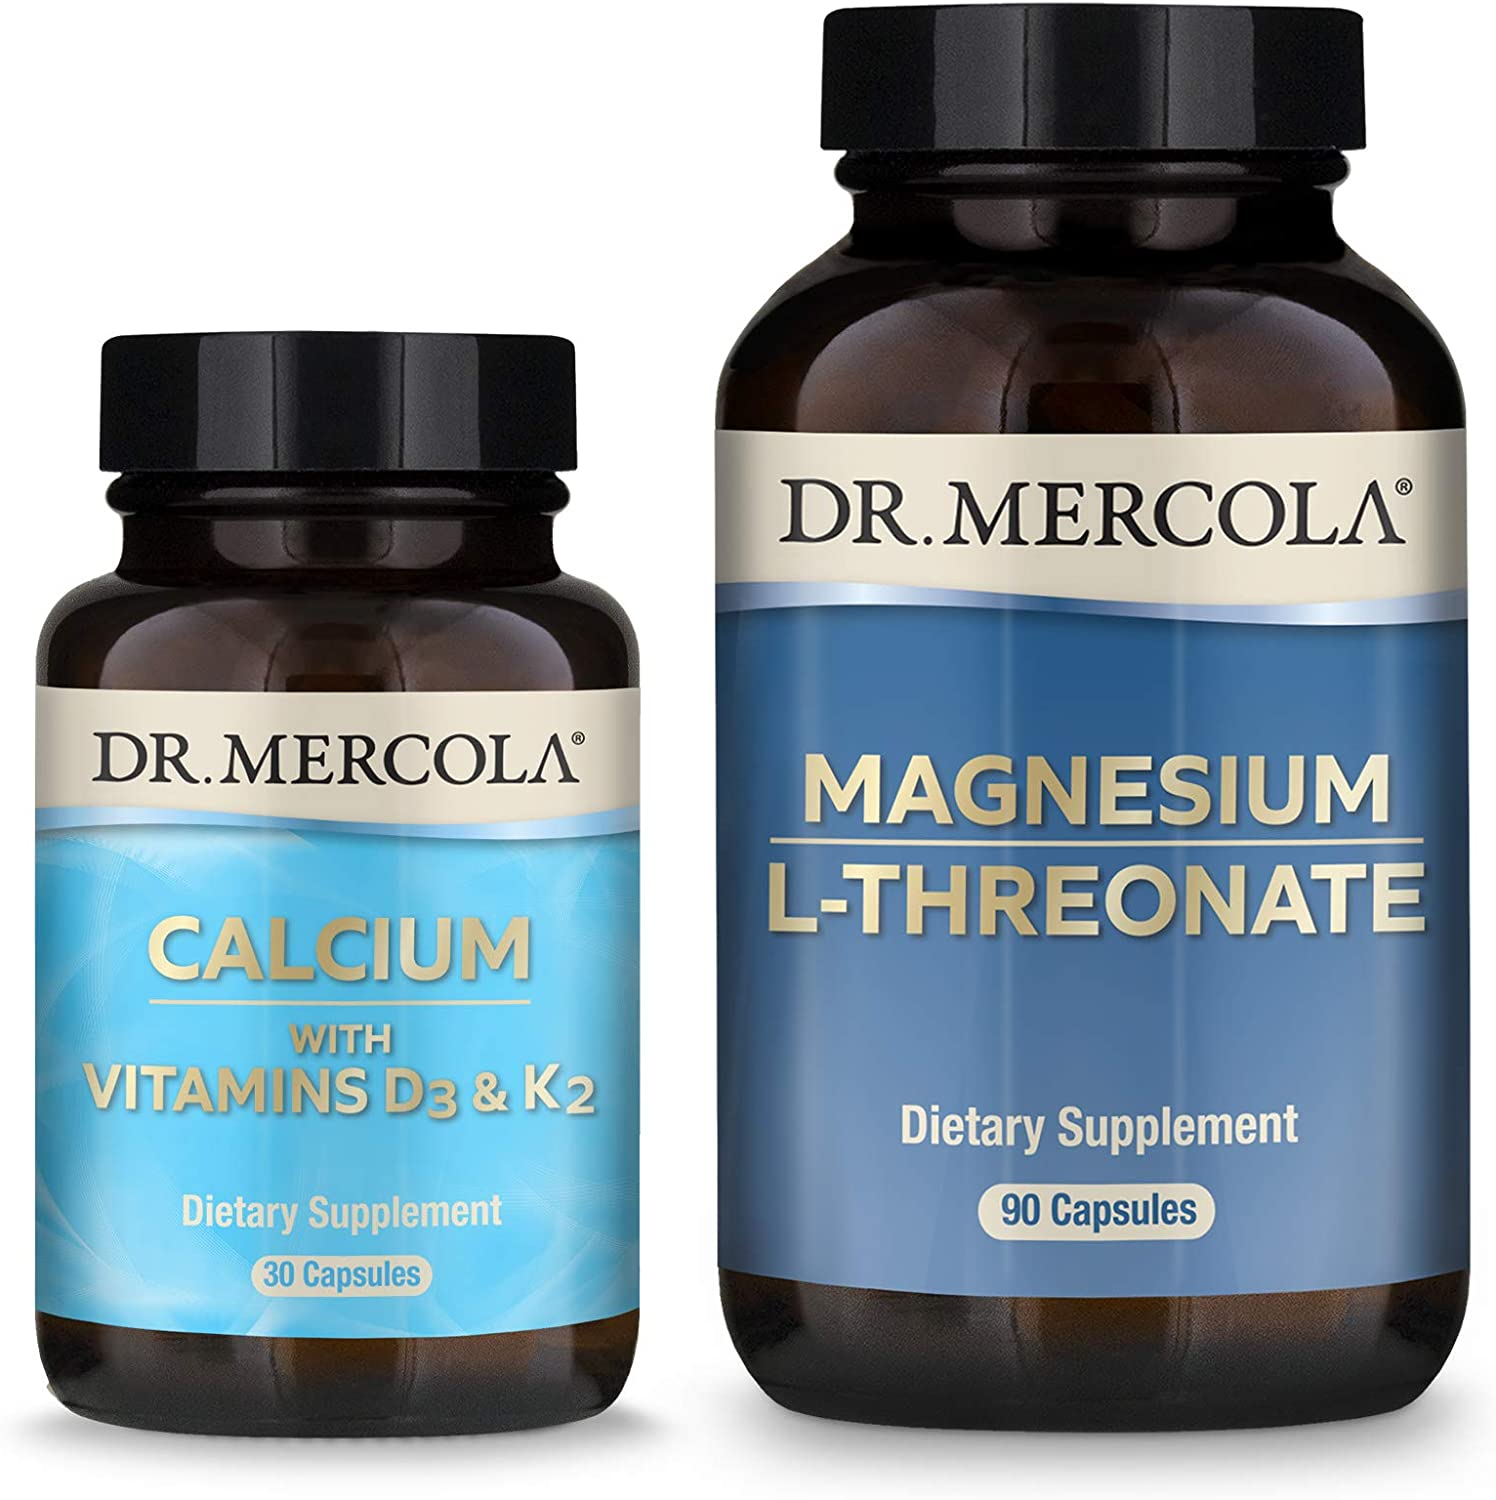 Dr. Mercola Calcium D3 & K2 and Magnesium L-Threonate Pack (30 Servings), Supports Bone and Cardiovascular Health, Non GMO, Soy Free, Gluten Free